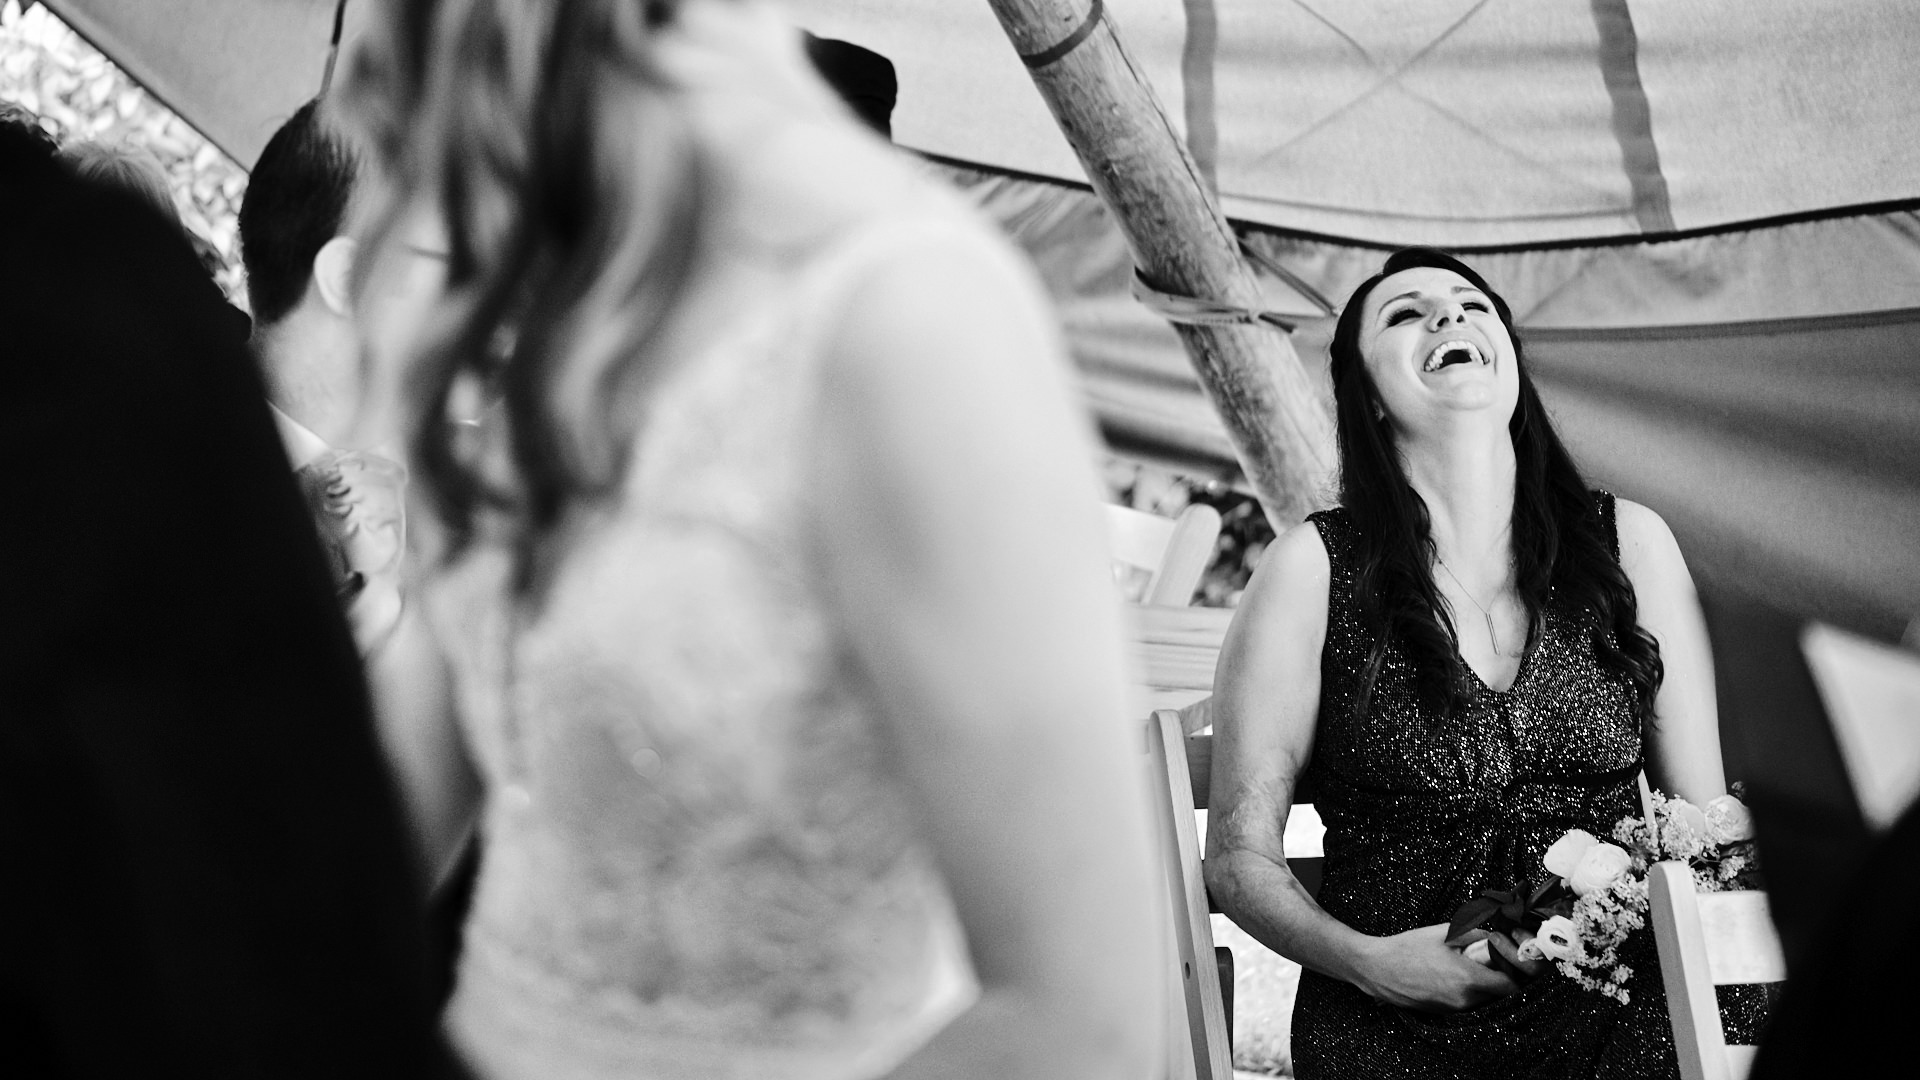 black and white photograph of a bridesmaid laughing during a wedding ceremony